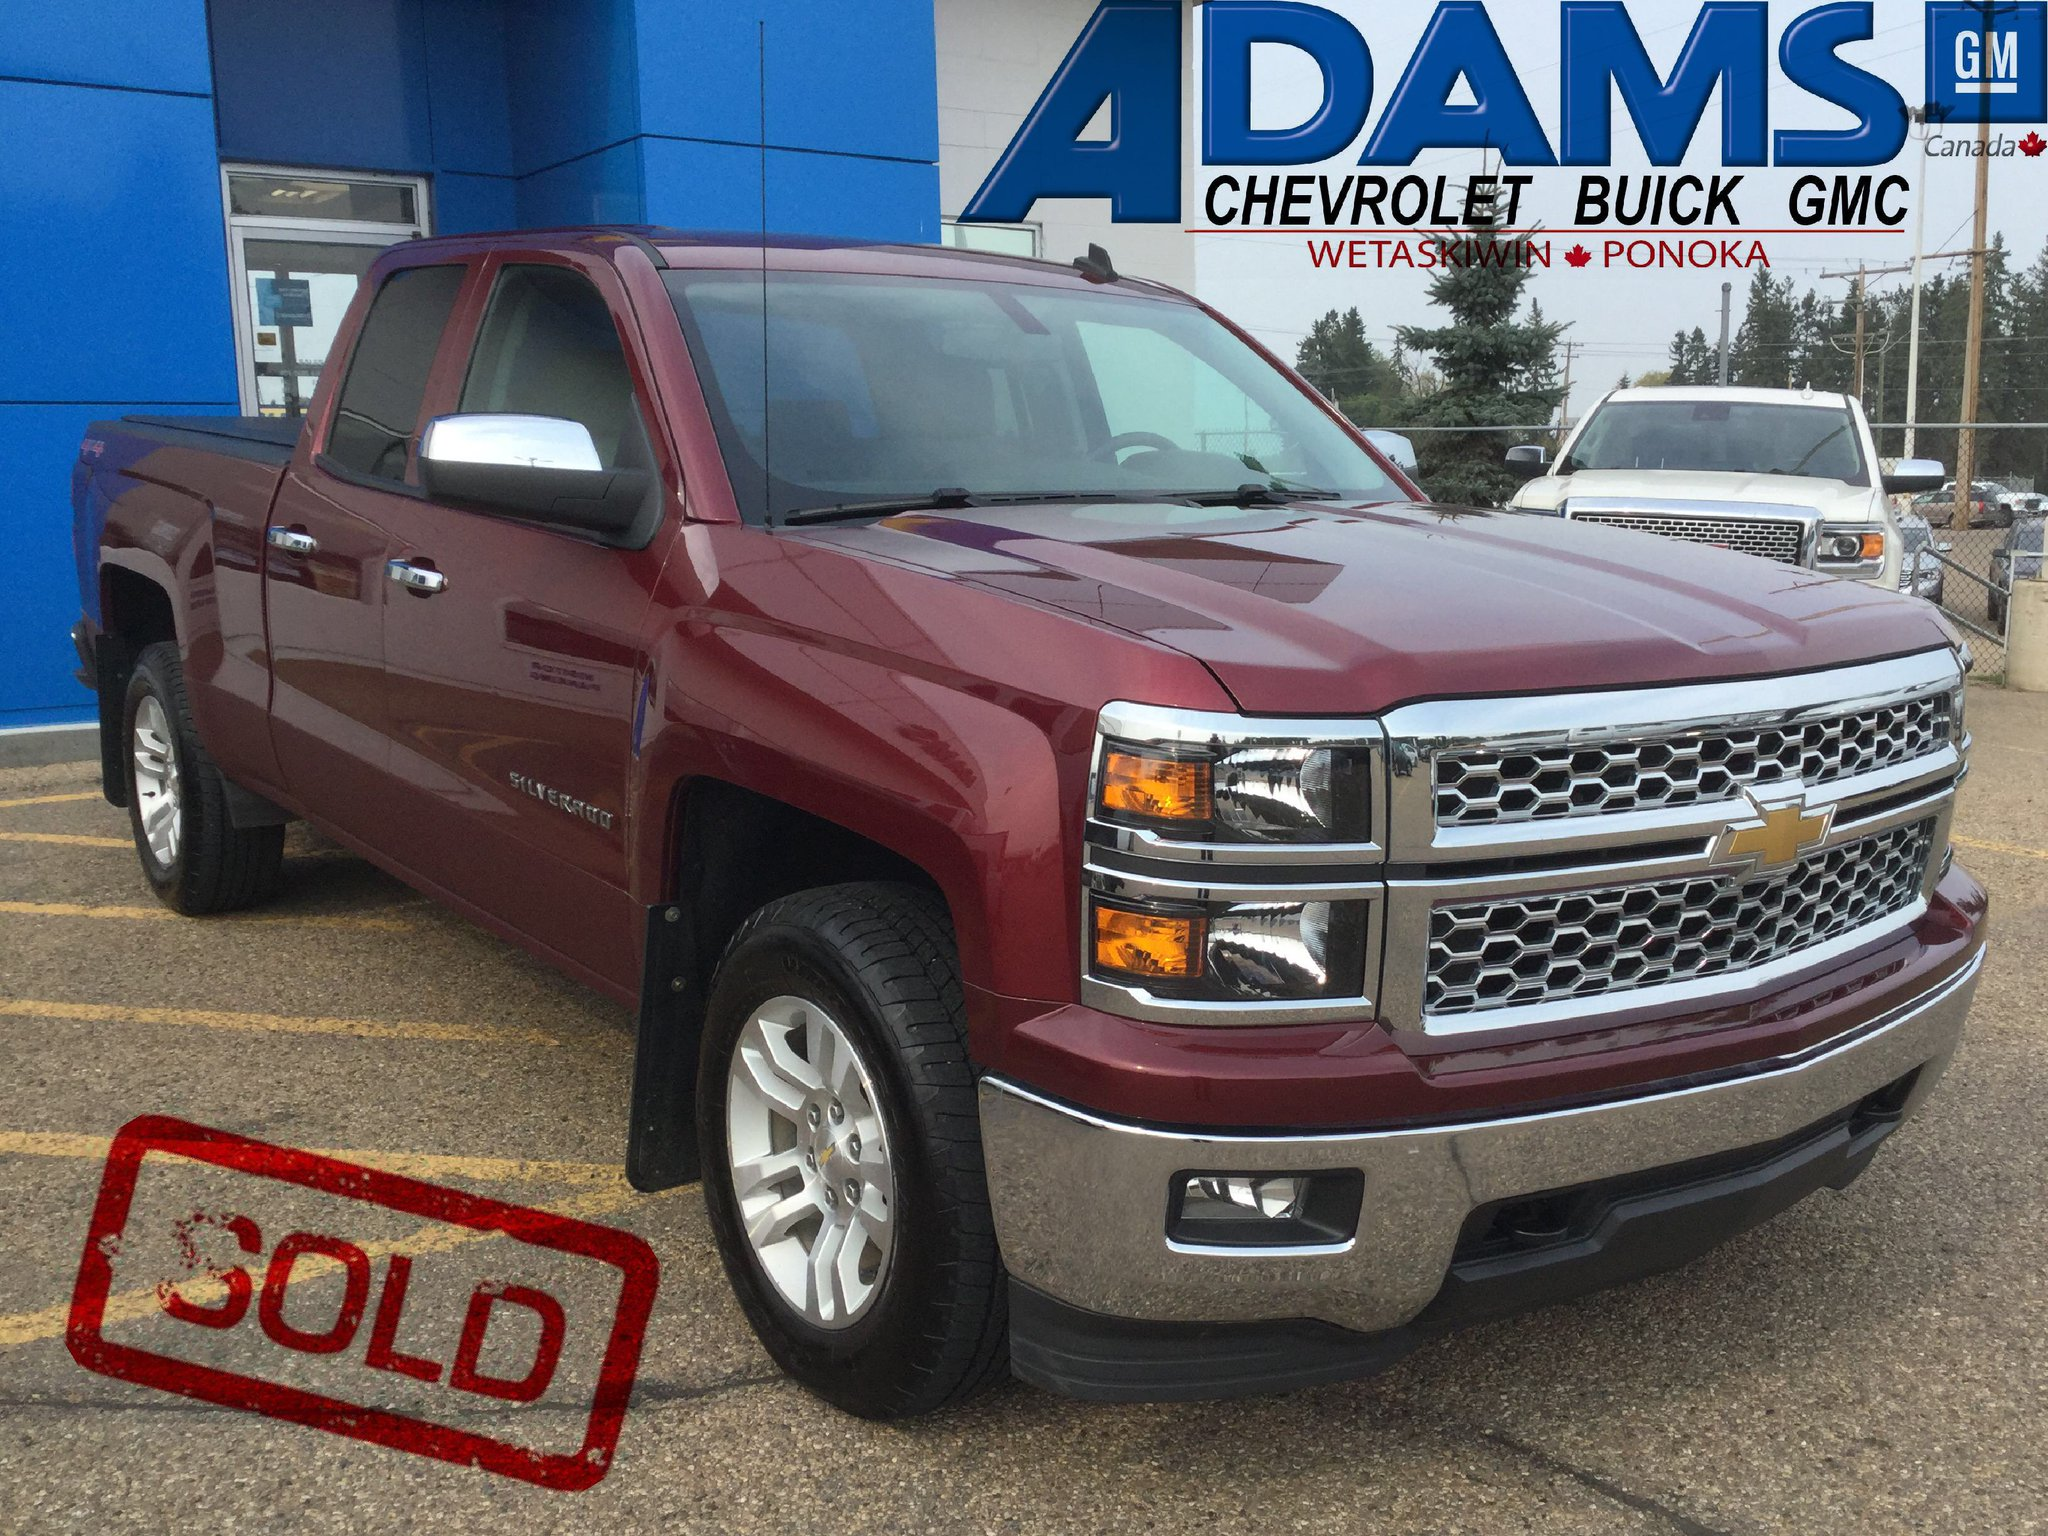 "Adams Chevrolet on Twitter: ""Congratulations and thank-you Mr Maeda for your business! The 2014 Chevrolet Silverado will serve you well!"